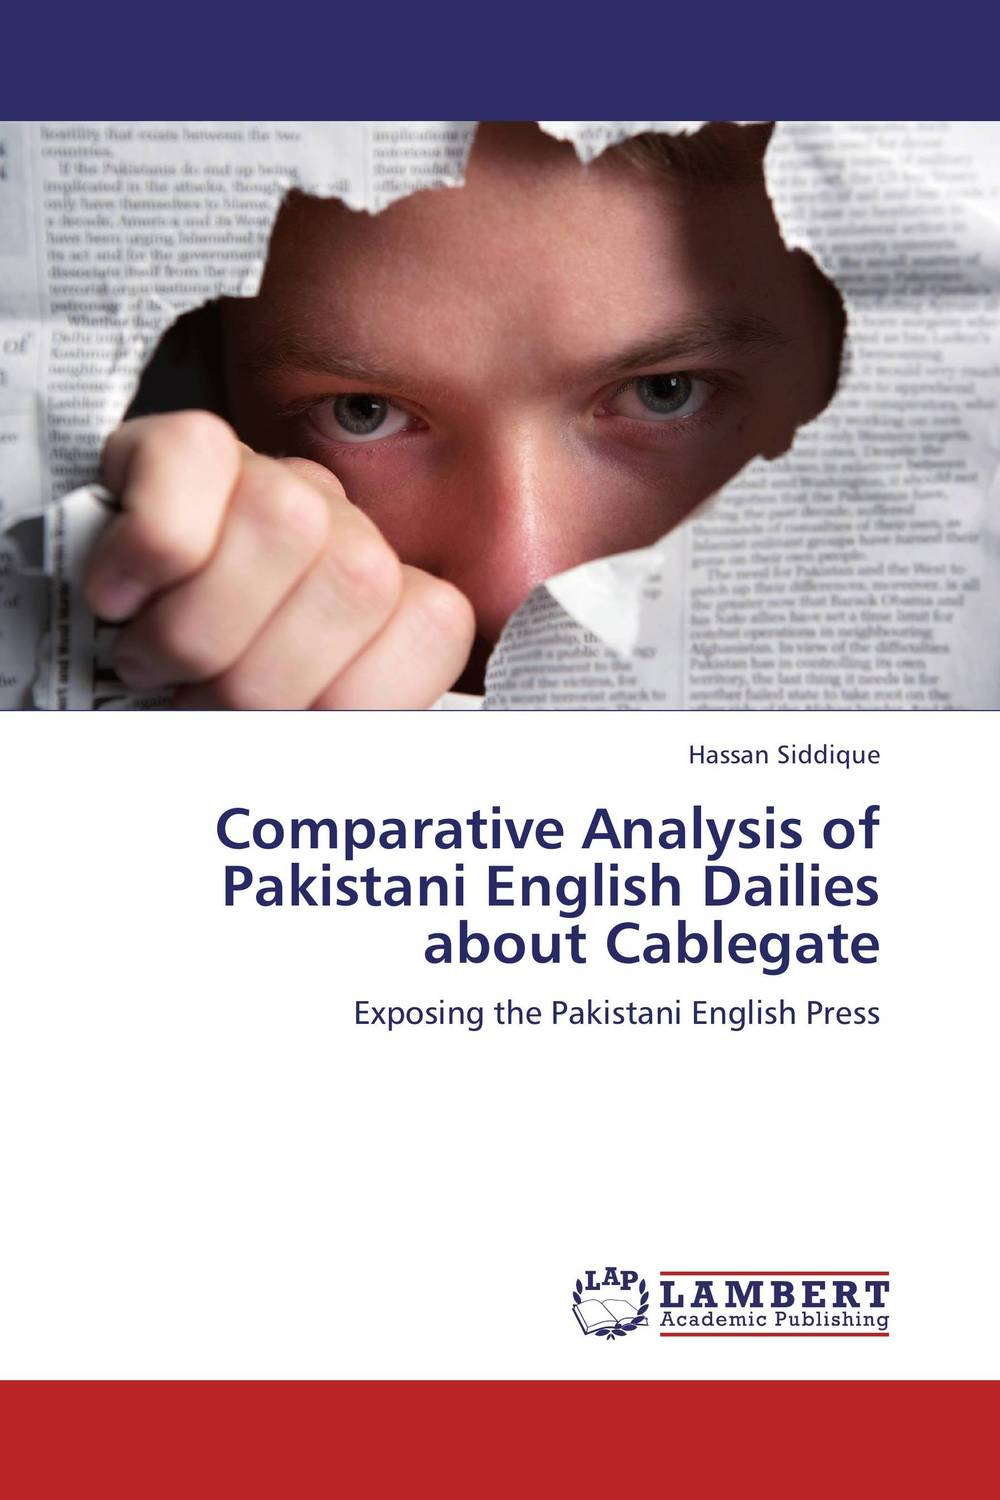 Comparative Analysis of Pakistani English Dailies about Cablegate